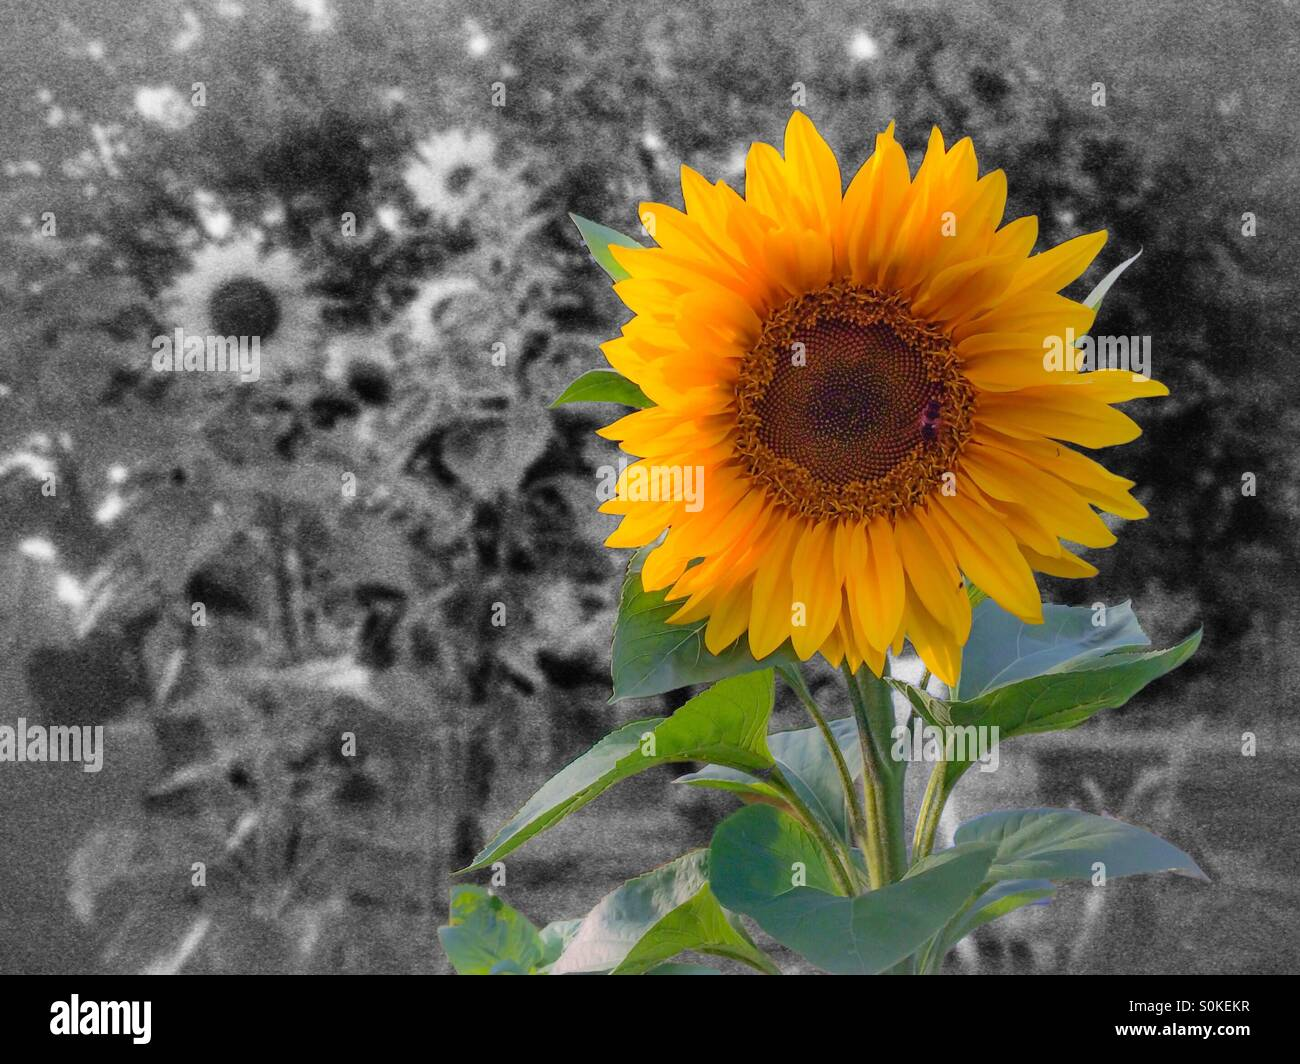 A Sunflower In Full Bloom Black And White Background With Several Sunflowers